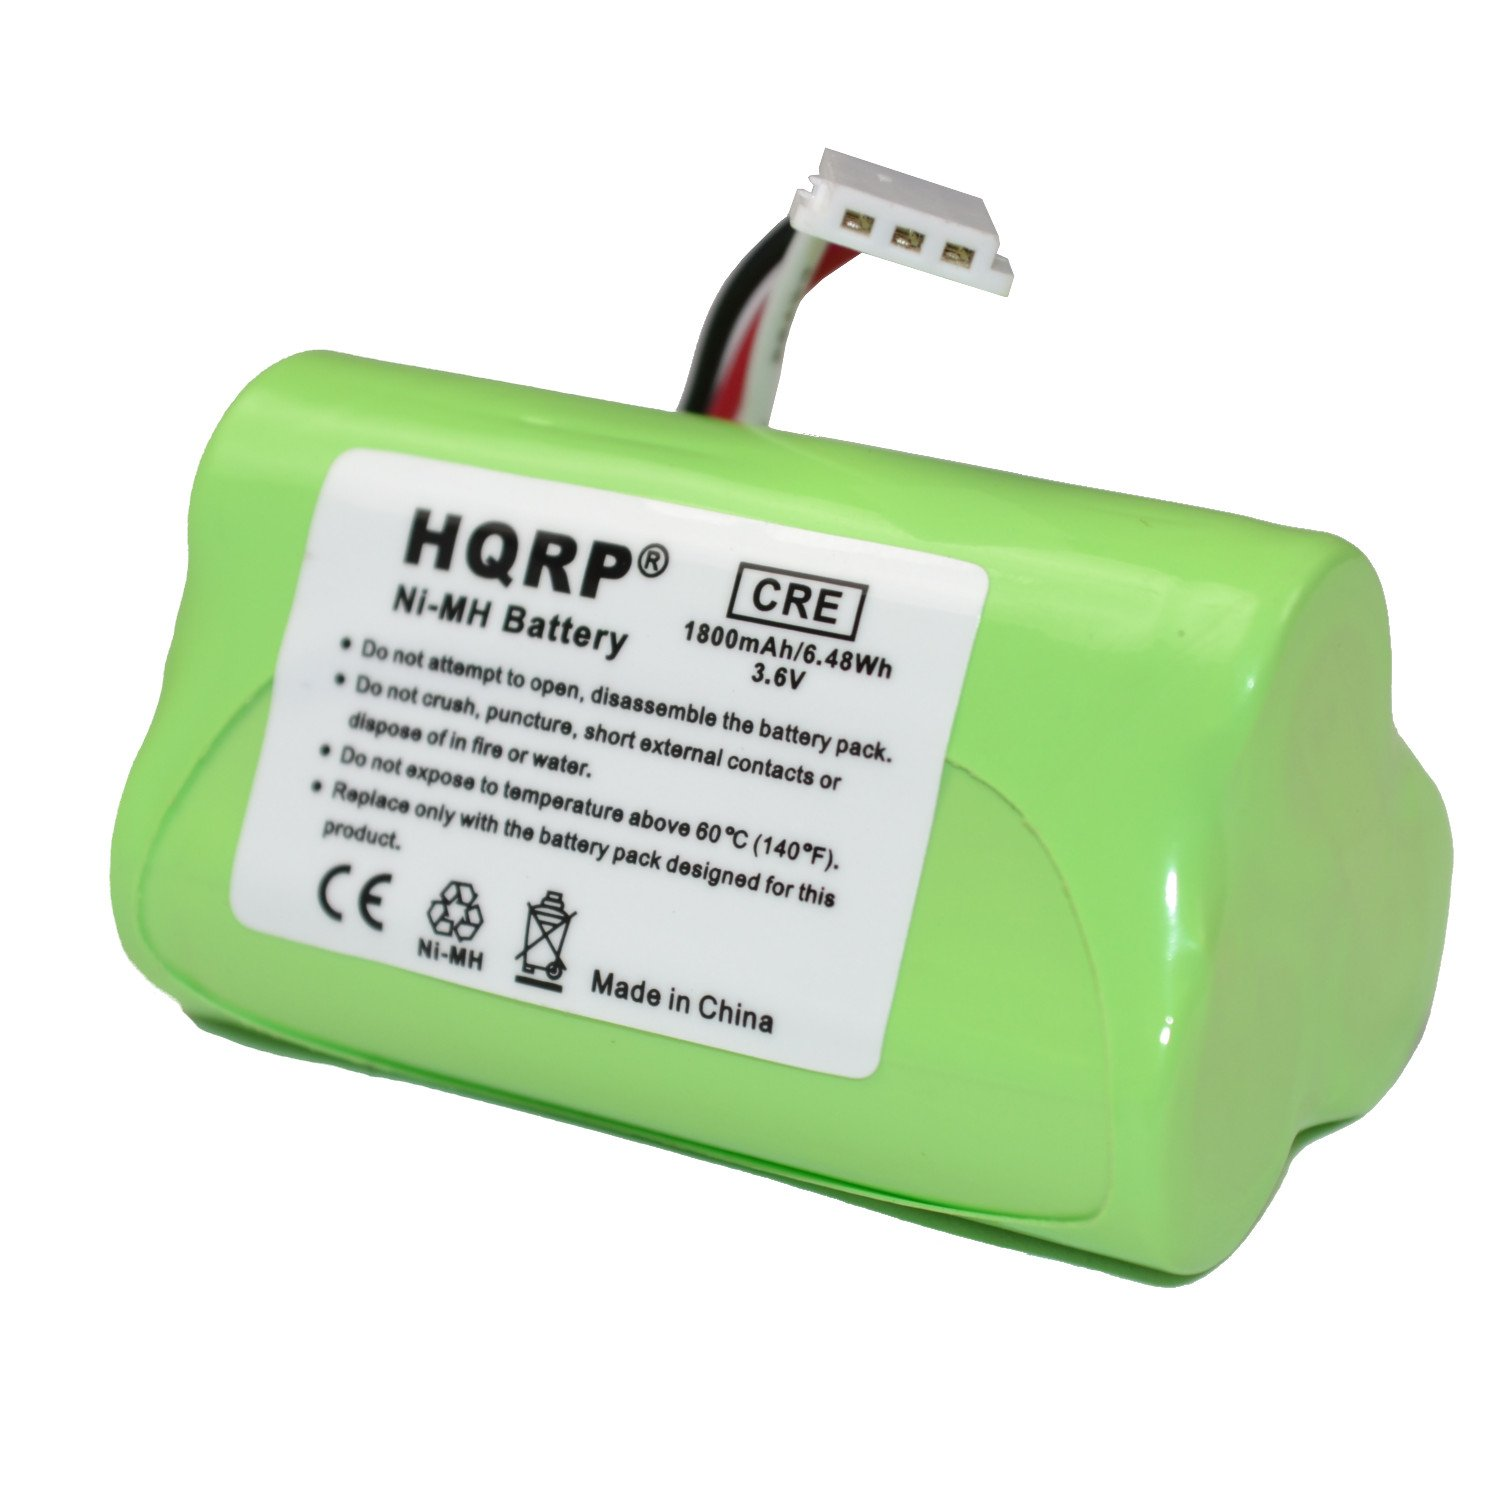 a34b5969c9a Amazon.com: HQRP Battery for Logitech Z515 S315i S715i 180AAHC3TMX S-00096  A-00026 S-00116 S00116 984-000181 984000181 Rechargeable Speaker Plus HQRP  ...